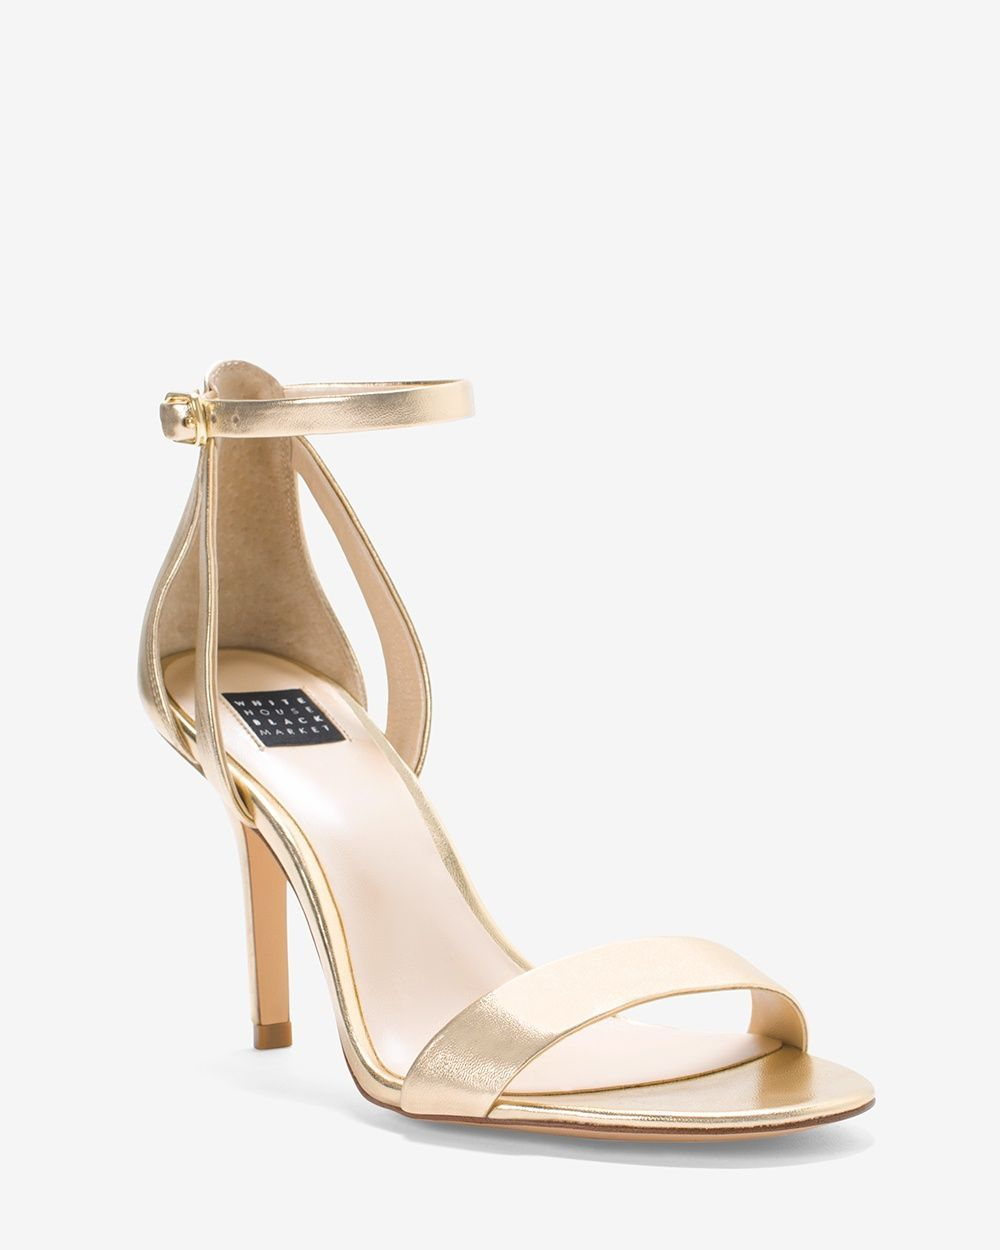 c718196b3 Women's Gold Strappy Mid-Heel Sandals by WHBM | Products | Mid heel ...